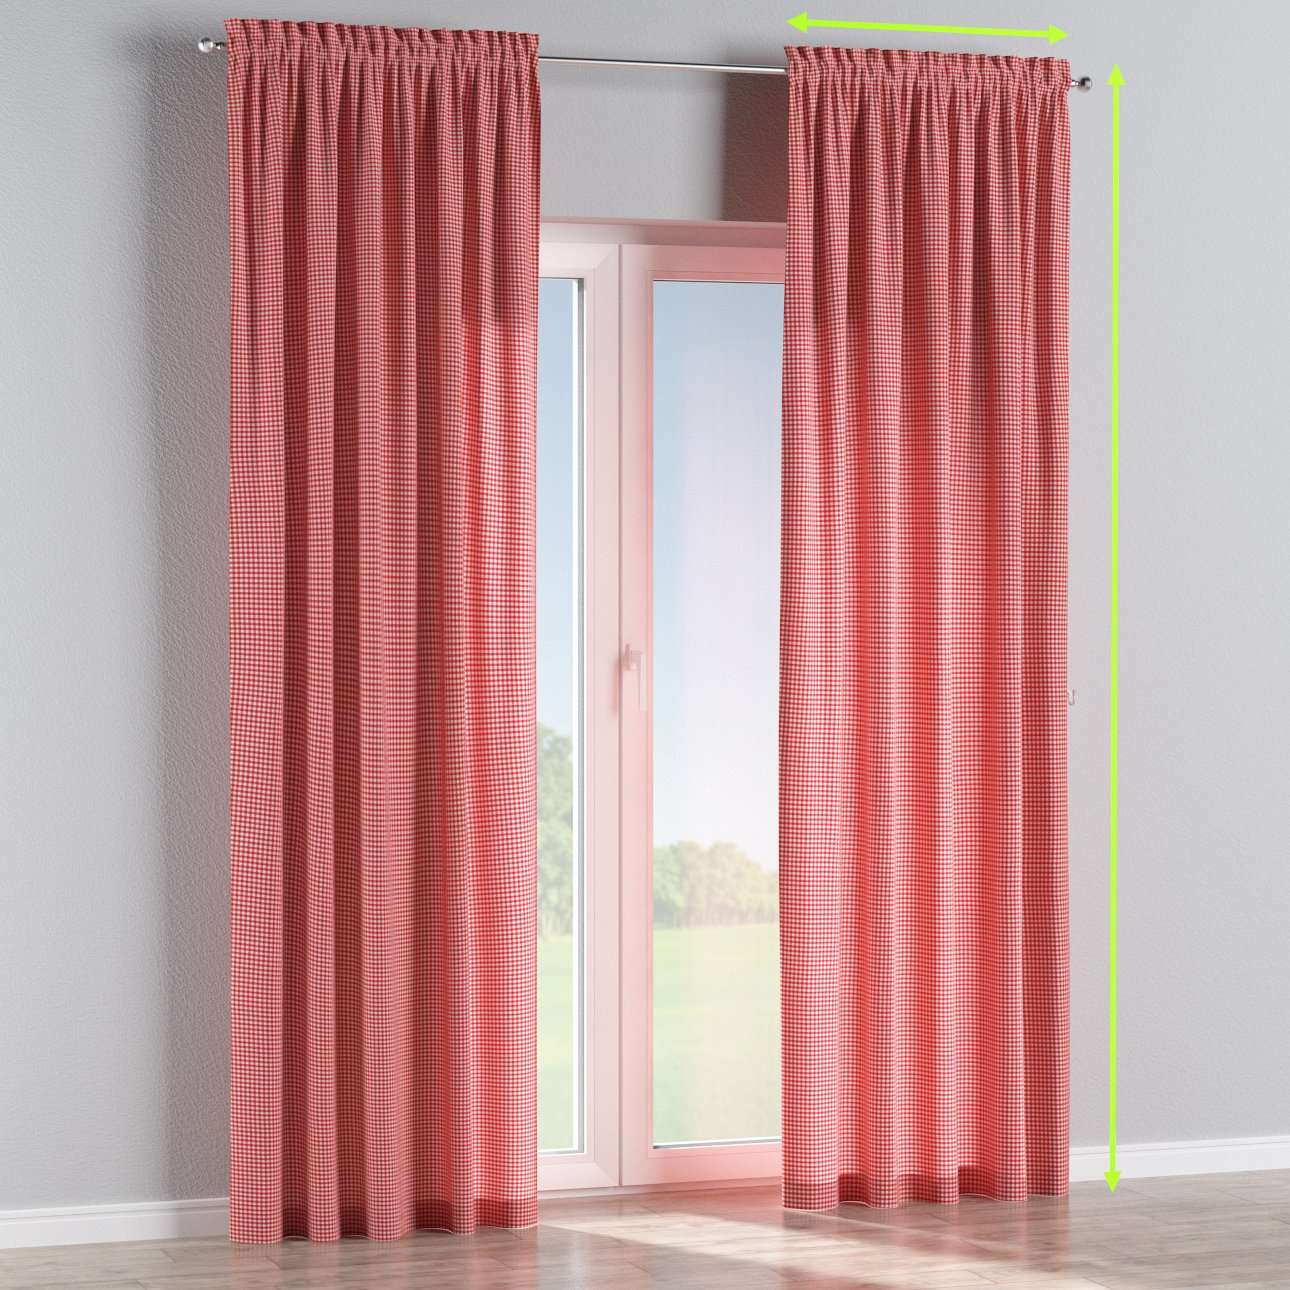 Slot and frill lined curtains in collection Quadro, fabric: 136-15